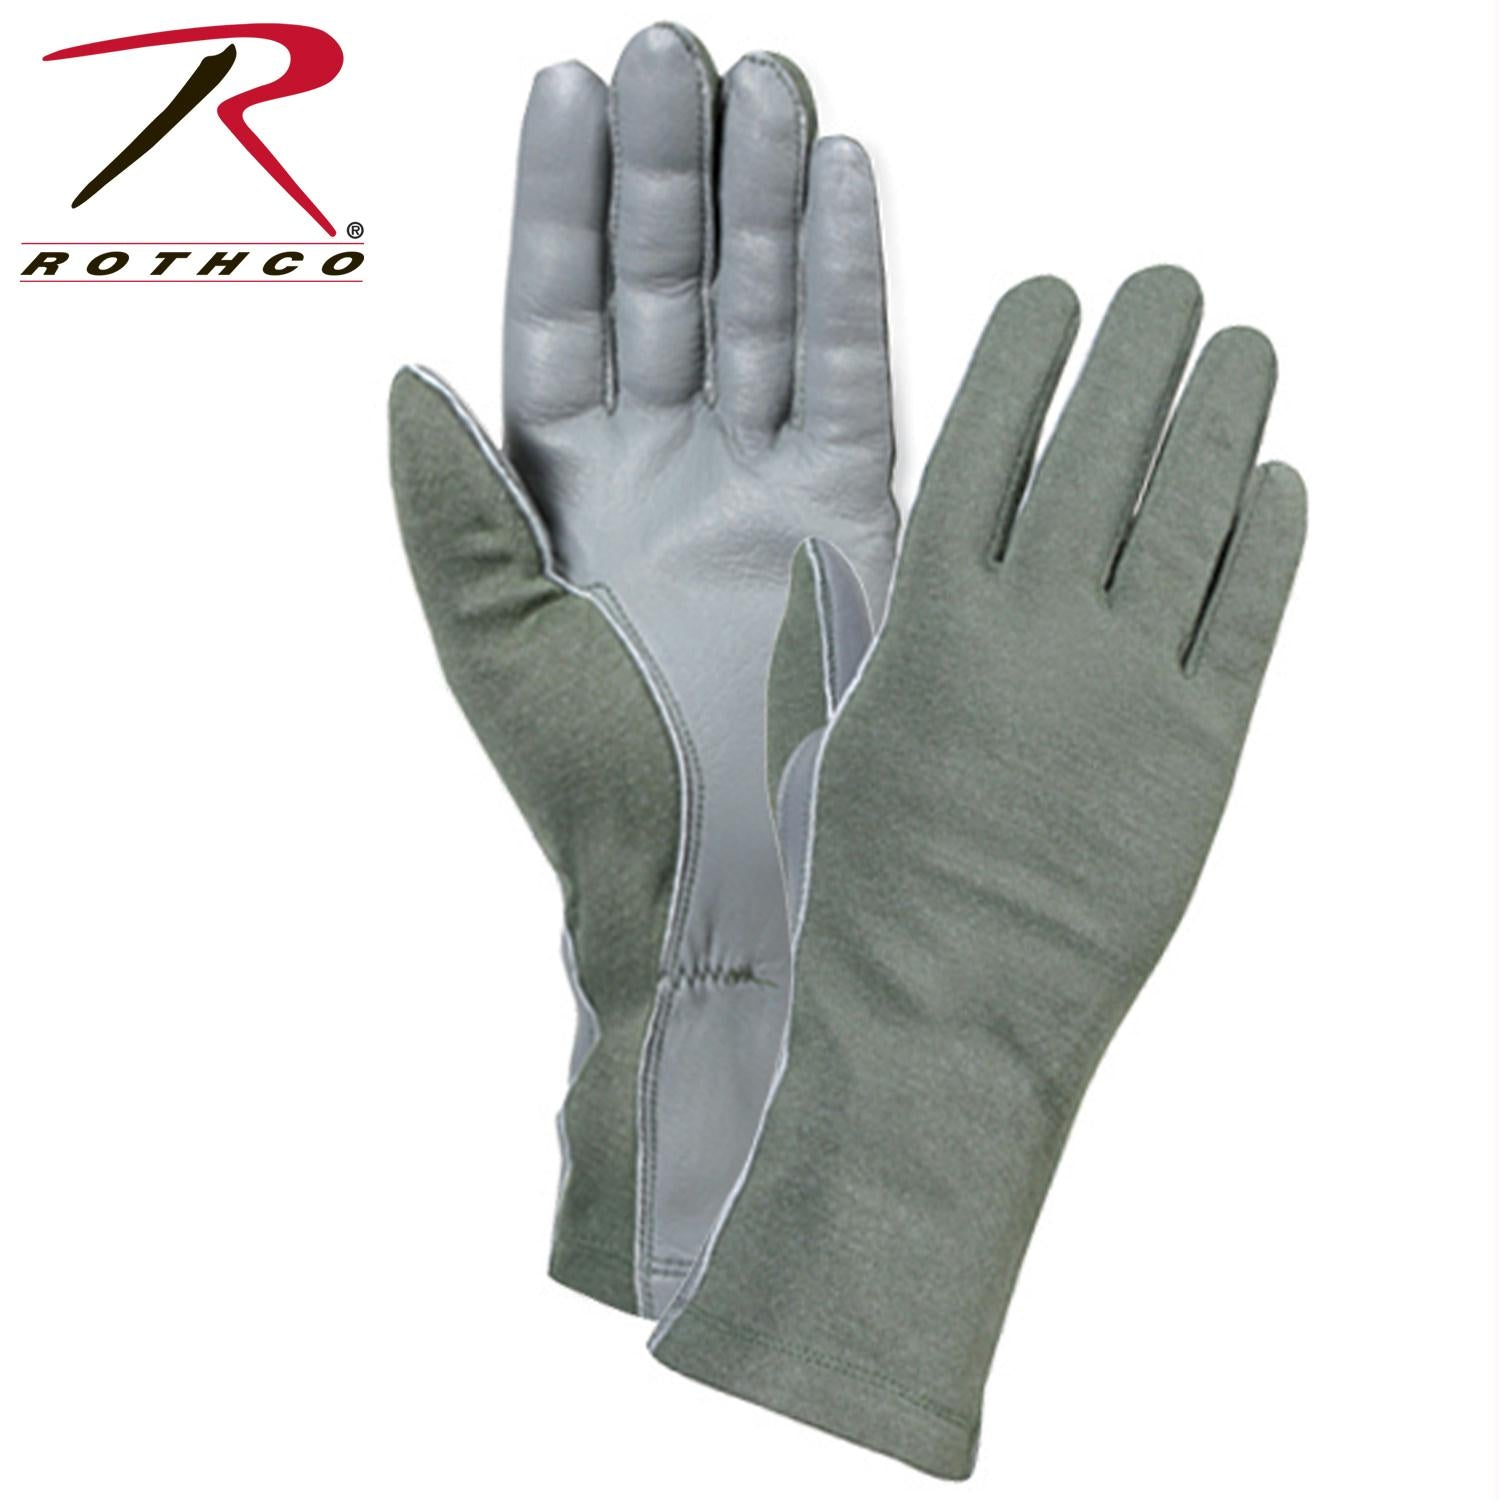 Rothco G.I. Type Flame & Heat Resistant Flight Gloves - Olive Drab / 12